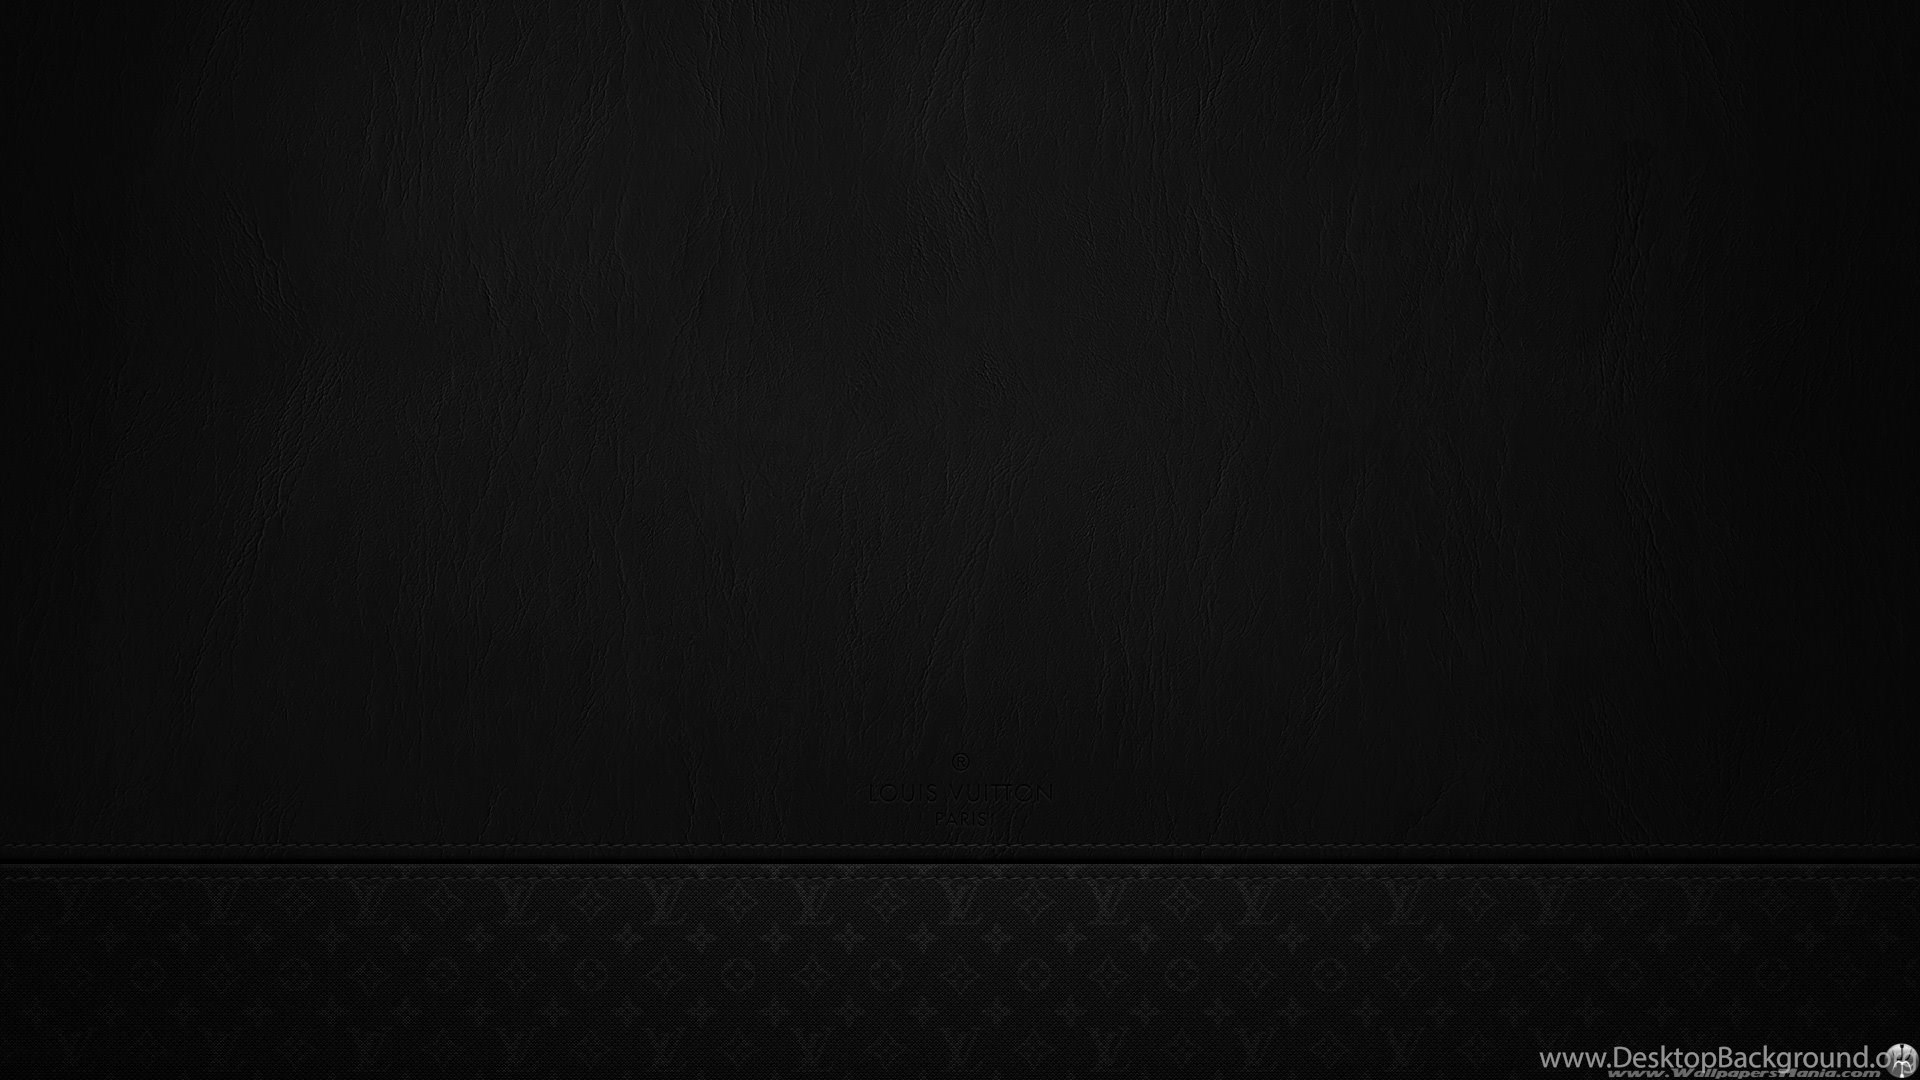 Wallpapers Louis Vuitton Theme Full Hd Resolution